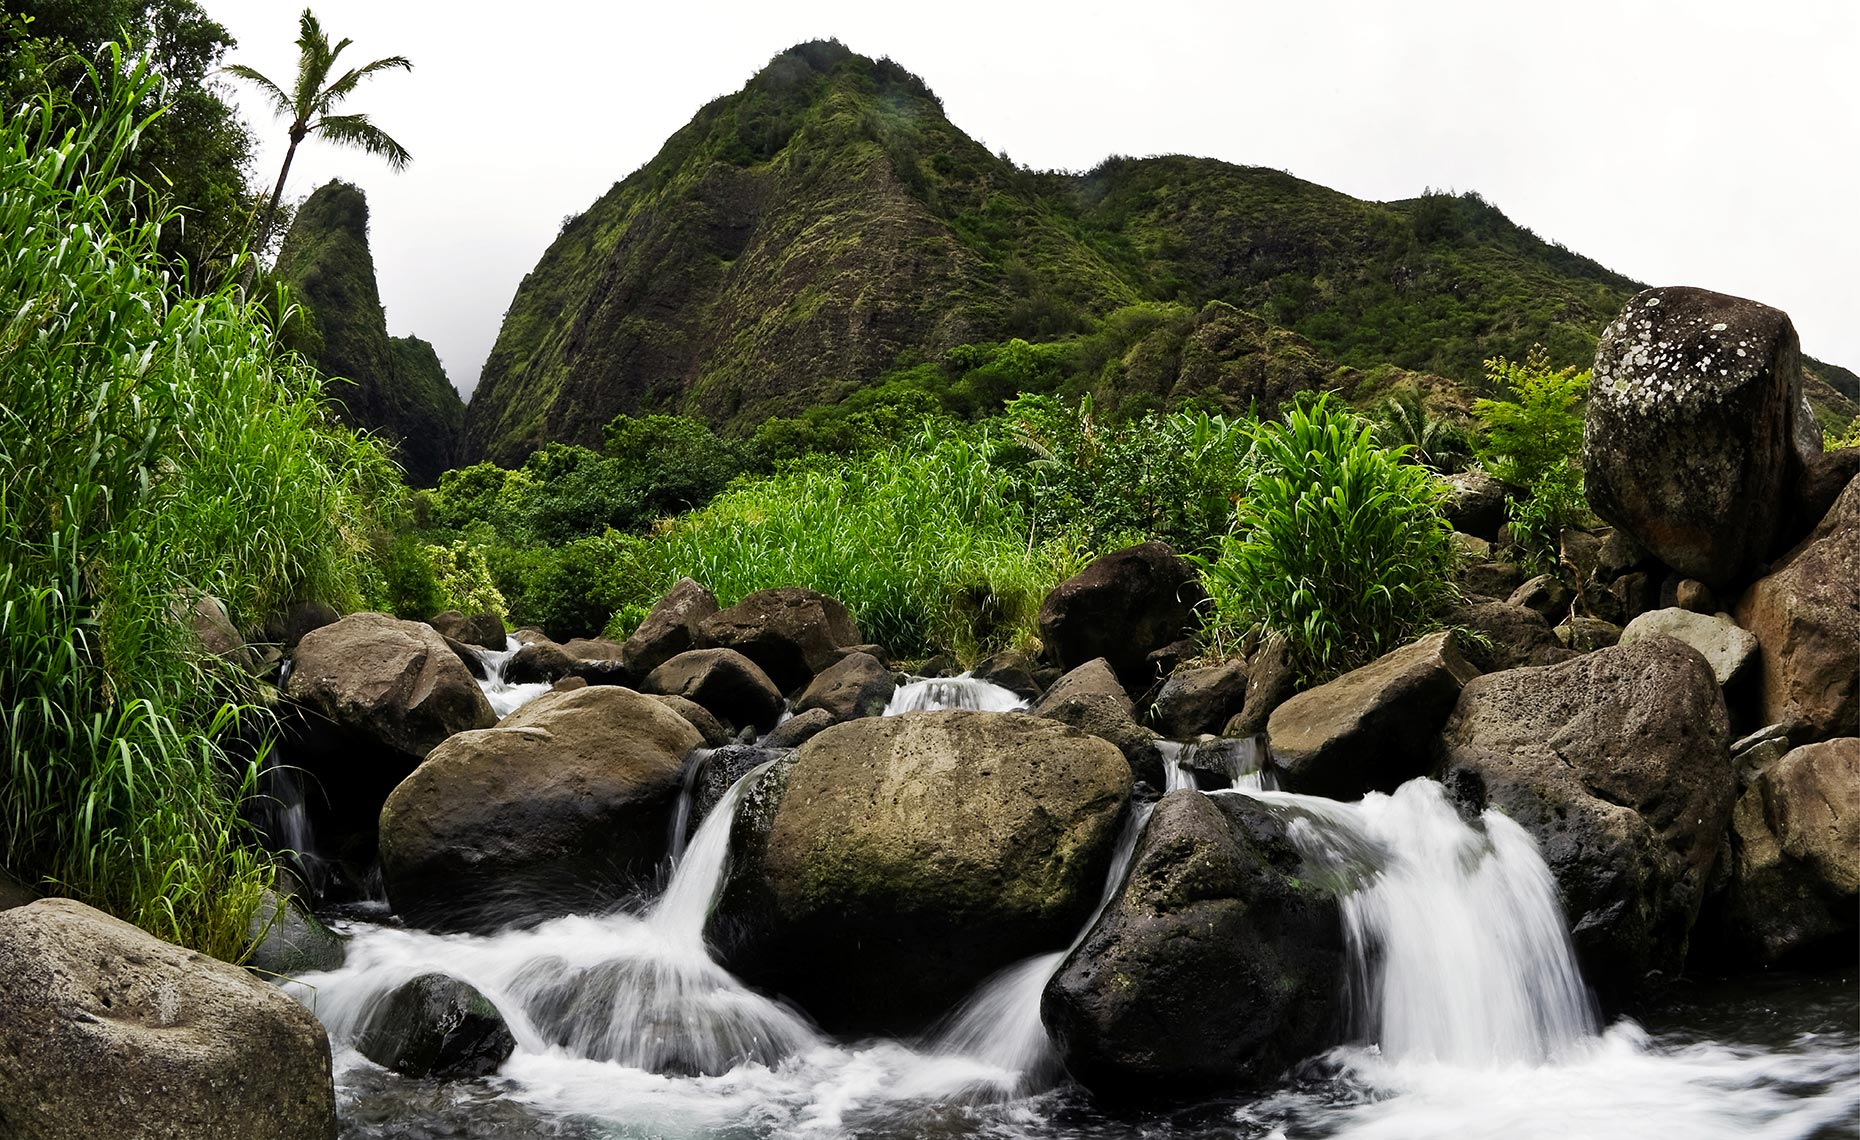 42_Iao_Valley_Stae_Park_Maui_Hawaii_Environment_Landscape_Chris_Wellhausen_Photography.JPG